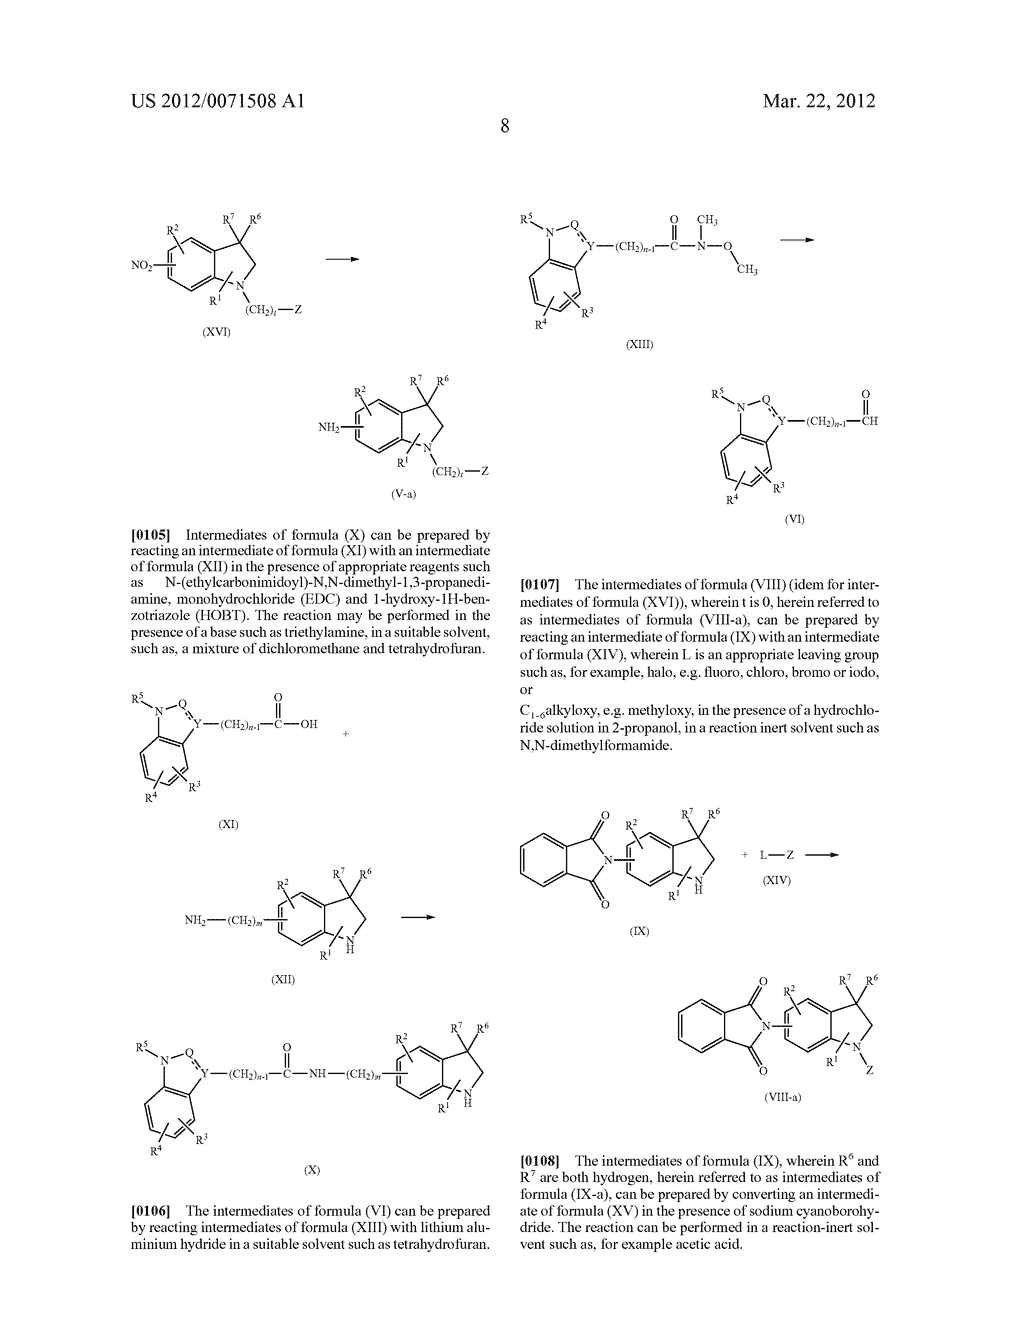 CYCLIC-ALKYLAMINE DERIVATIVES AS INHIBITORS OF THE INTERACTION BETWEEN     MDM2 AND P53 - diagram, schematic, and image 09